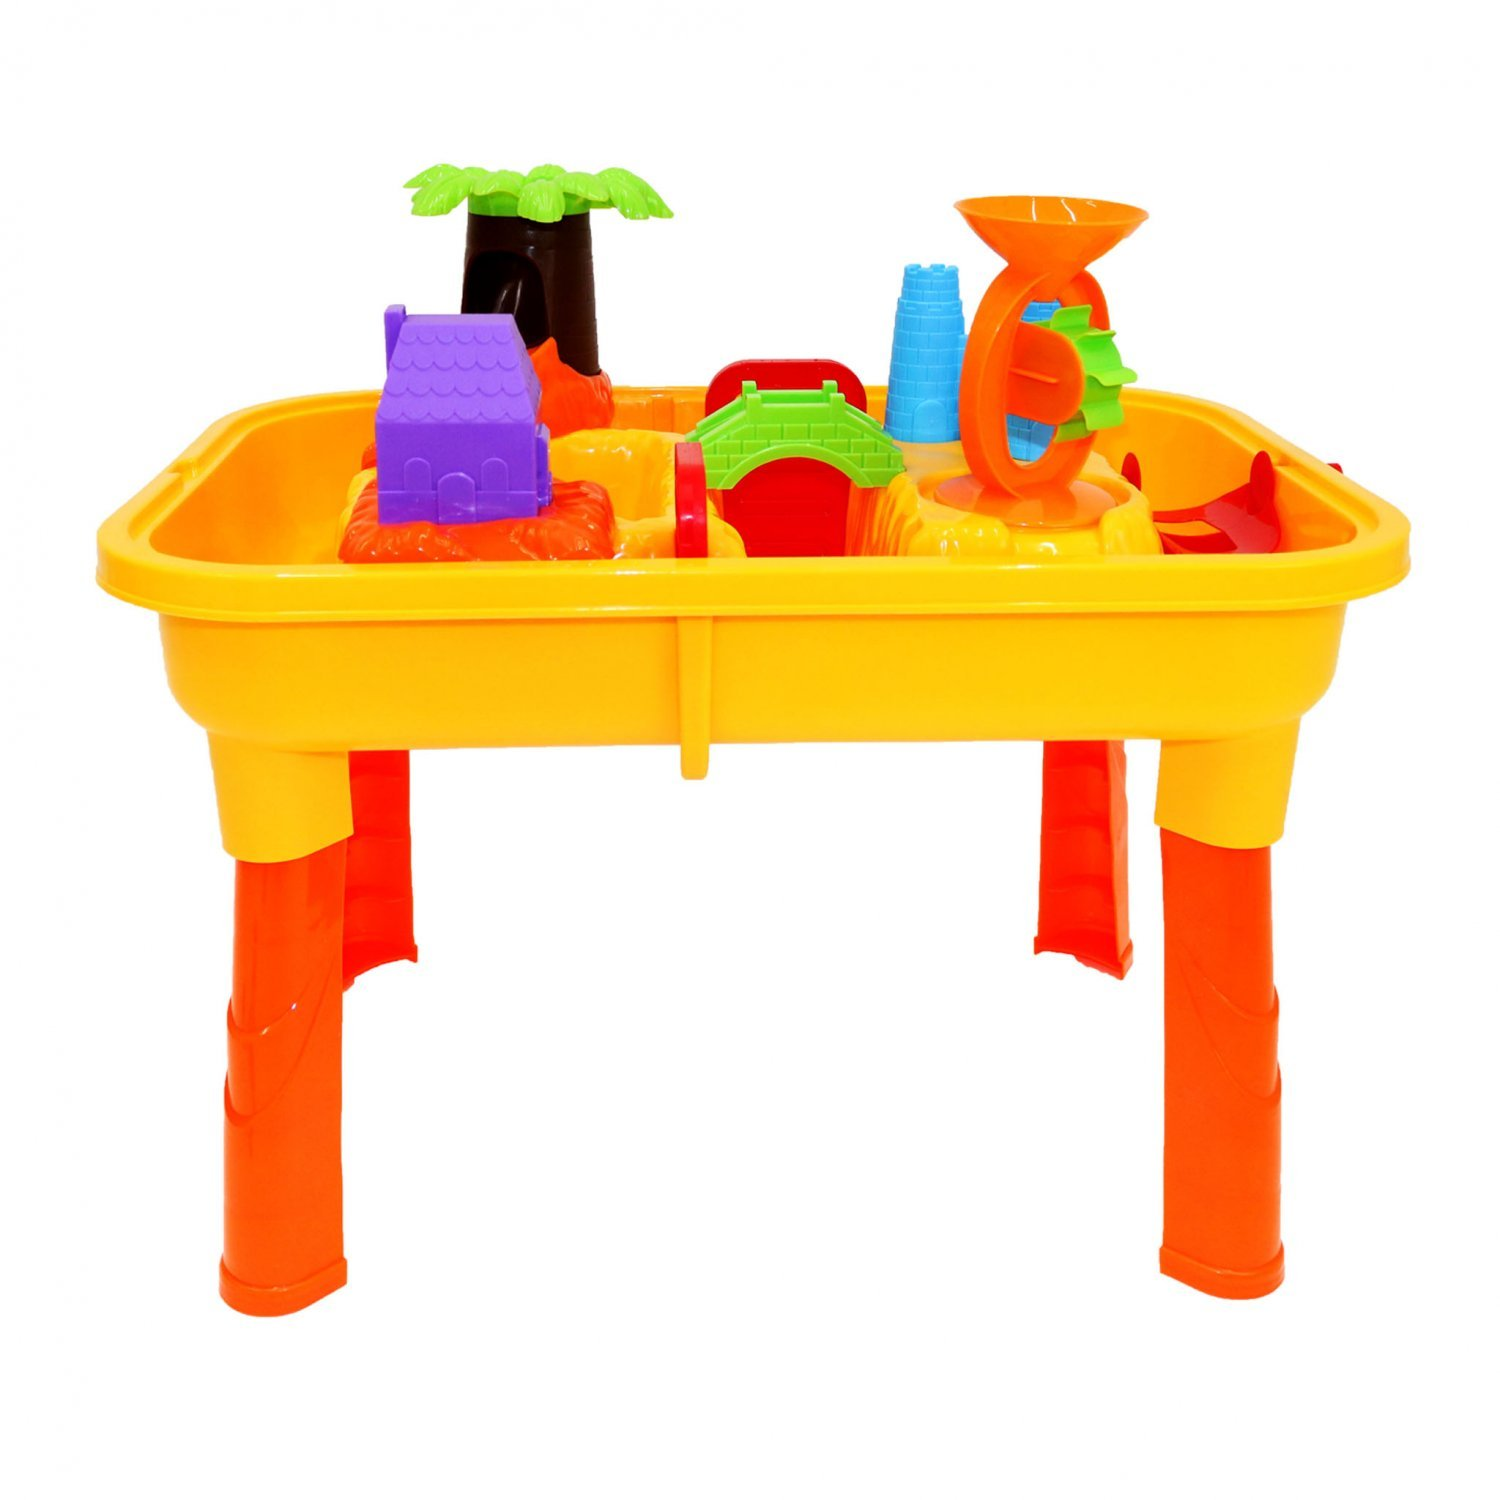 Toys For 20 : Toddlers kids childrens sand water table toy with